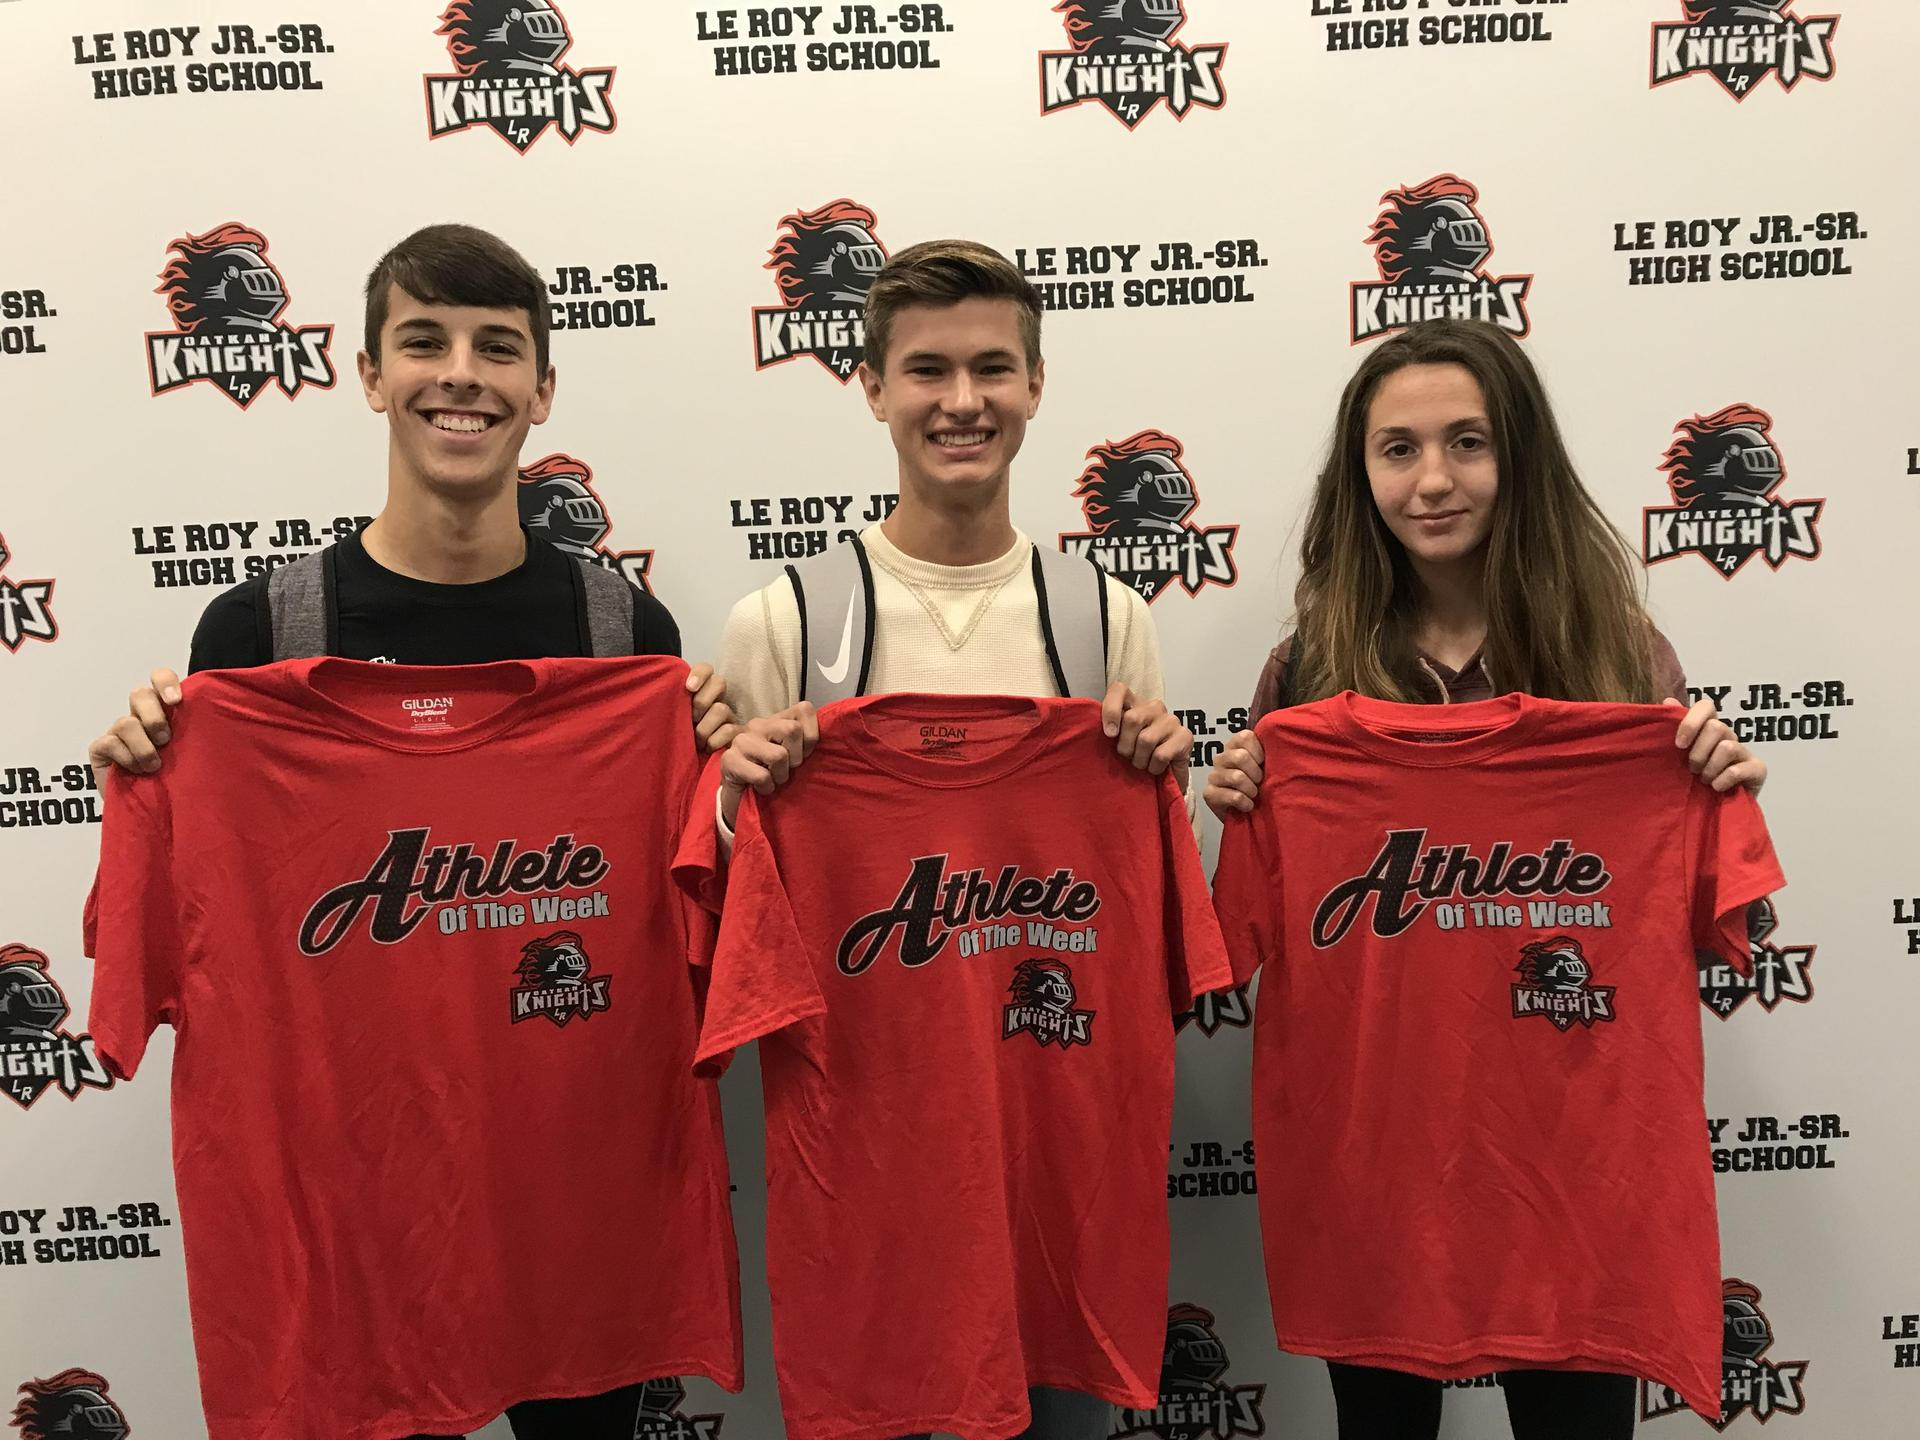 Athlete of the Week - R Mallaber, M McKenzie, M Purdy